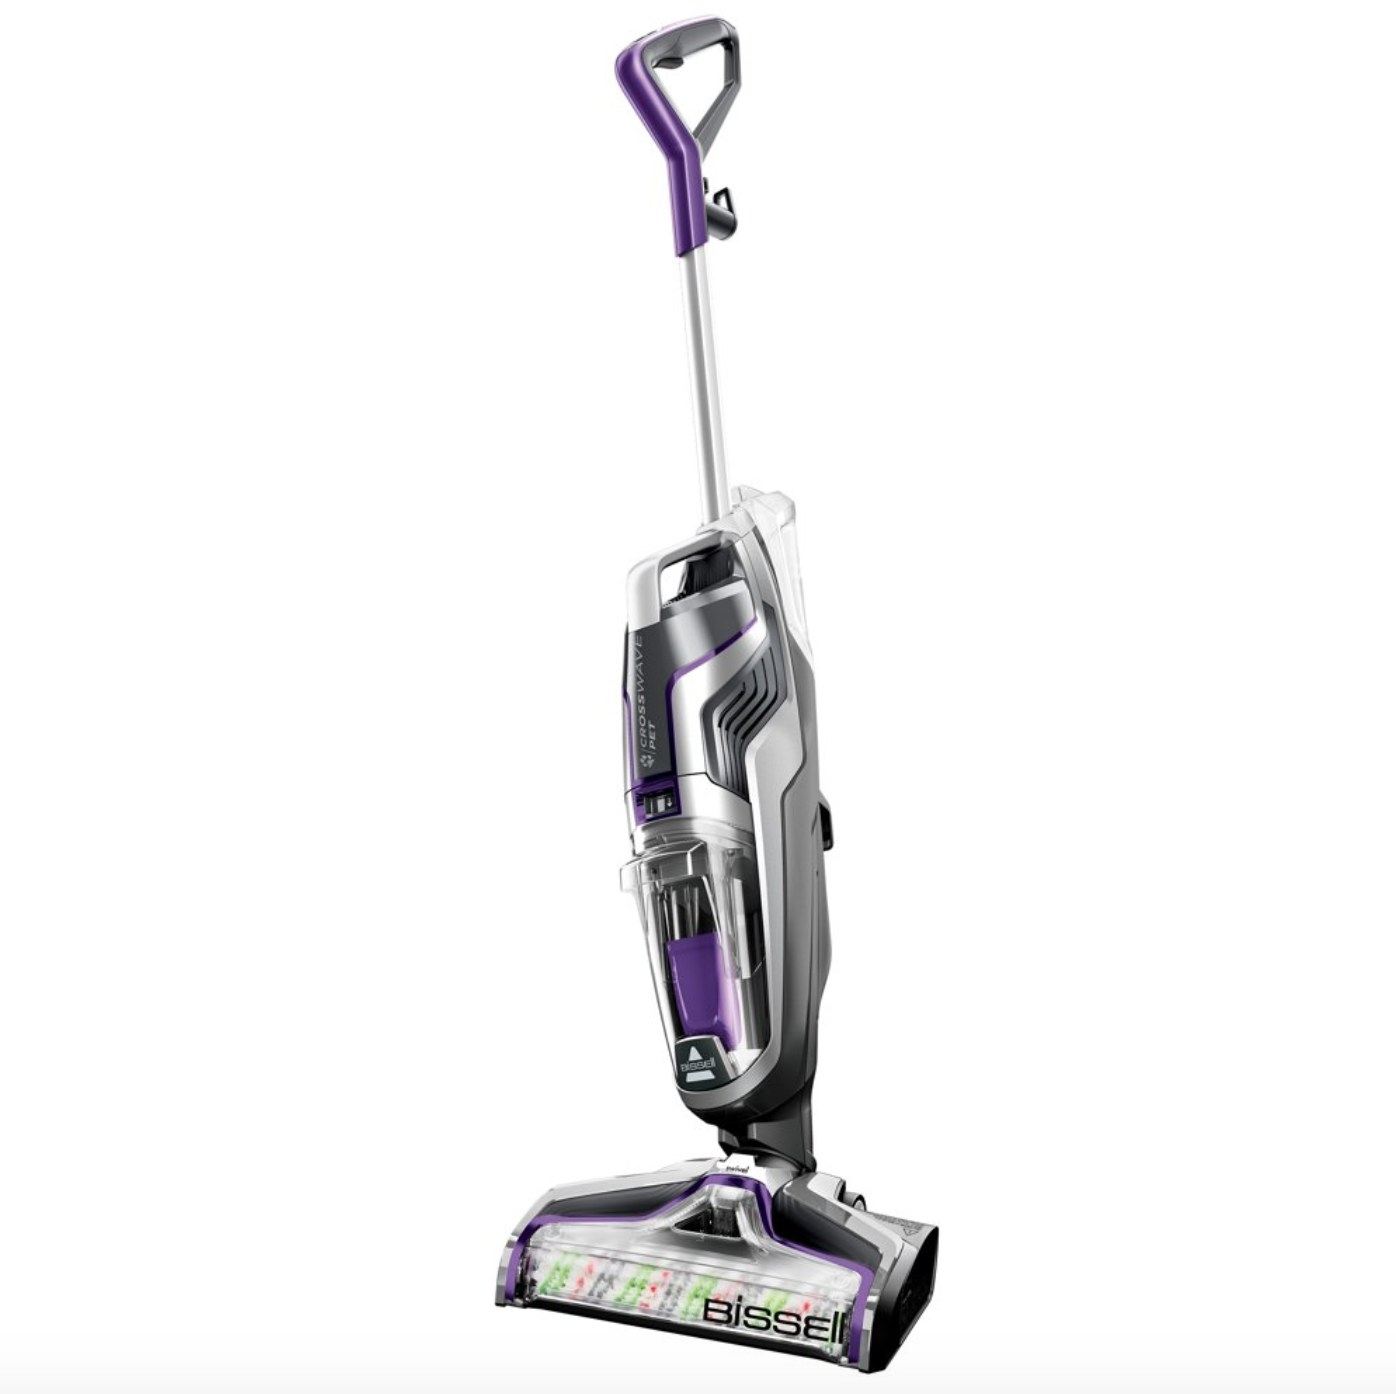 The multisurface wet/dry vacuum